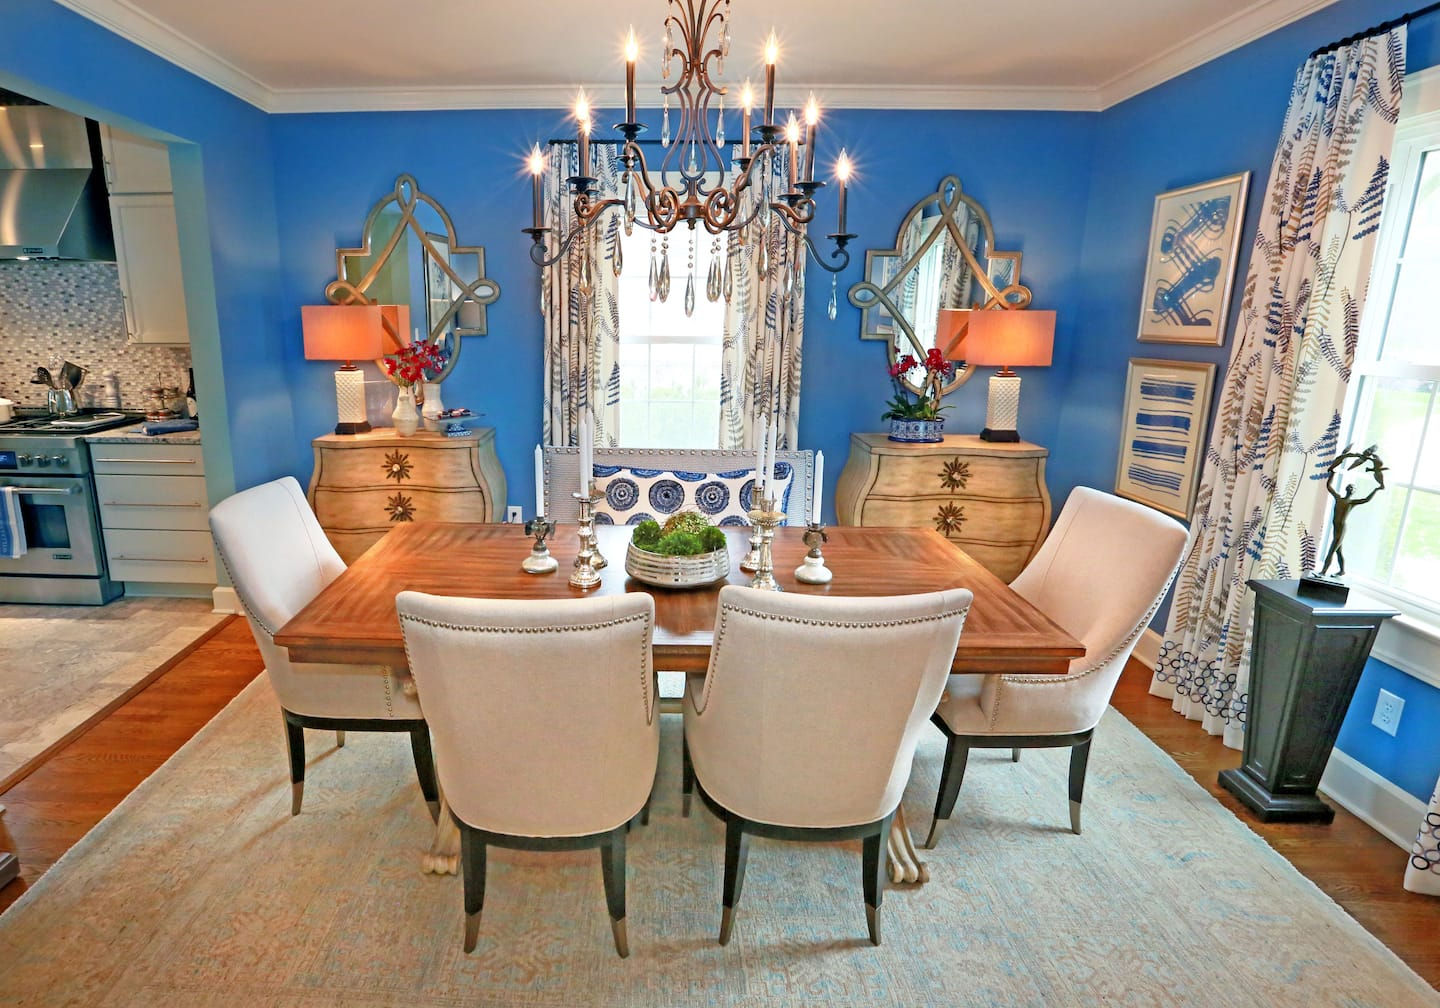 Eclectic Formal Dining Room With Patterned Drapes Decorative Mirrors Artwork And Traditional Chandelier